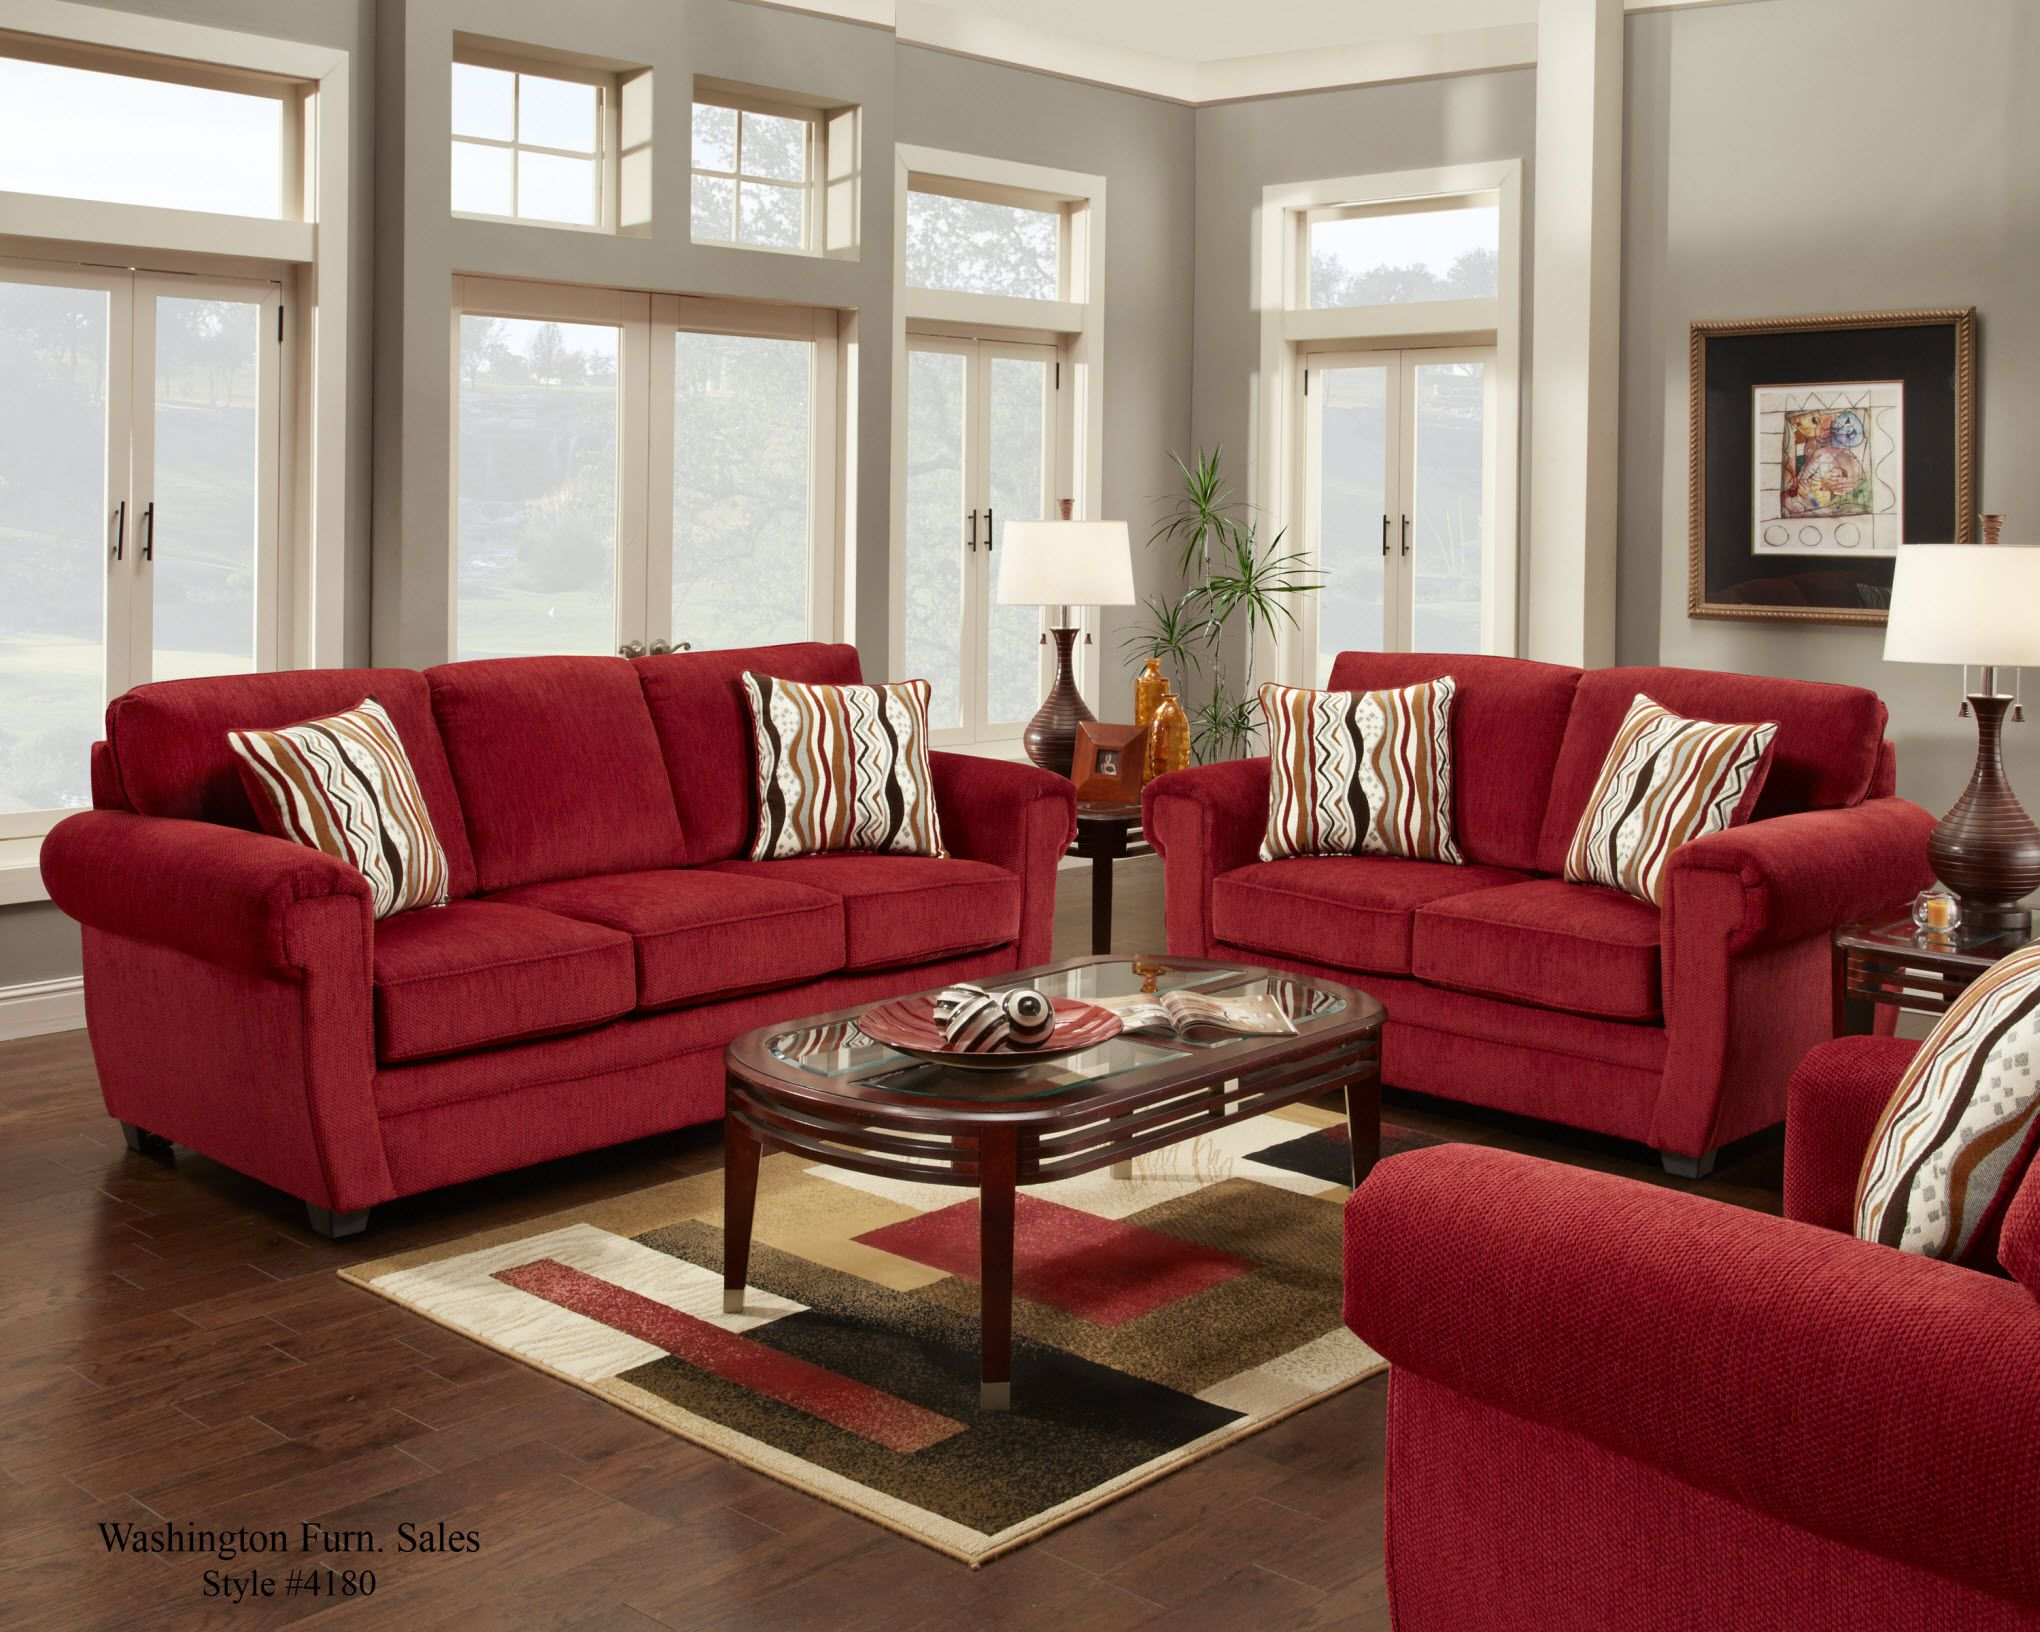 4180 washington samson red sofa and loveseat www for Decorating with a grey couch